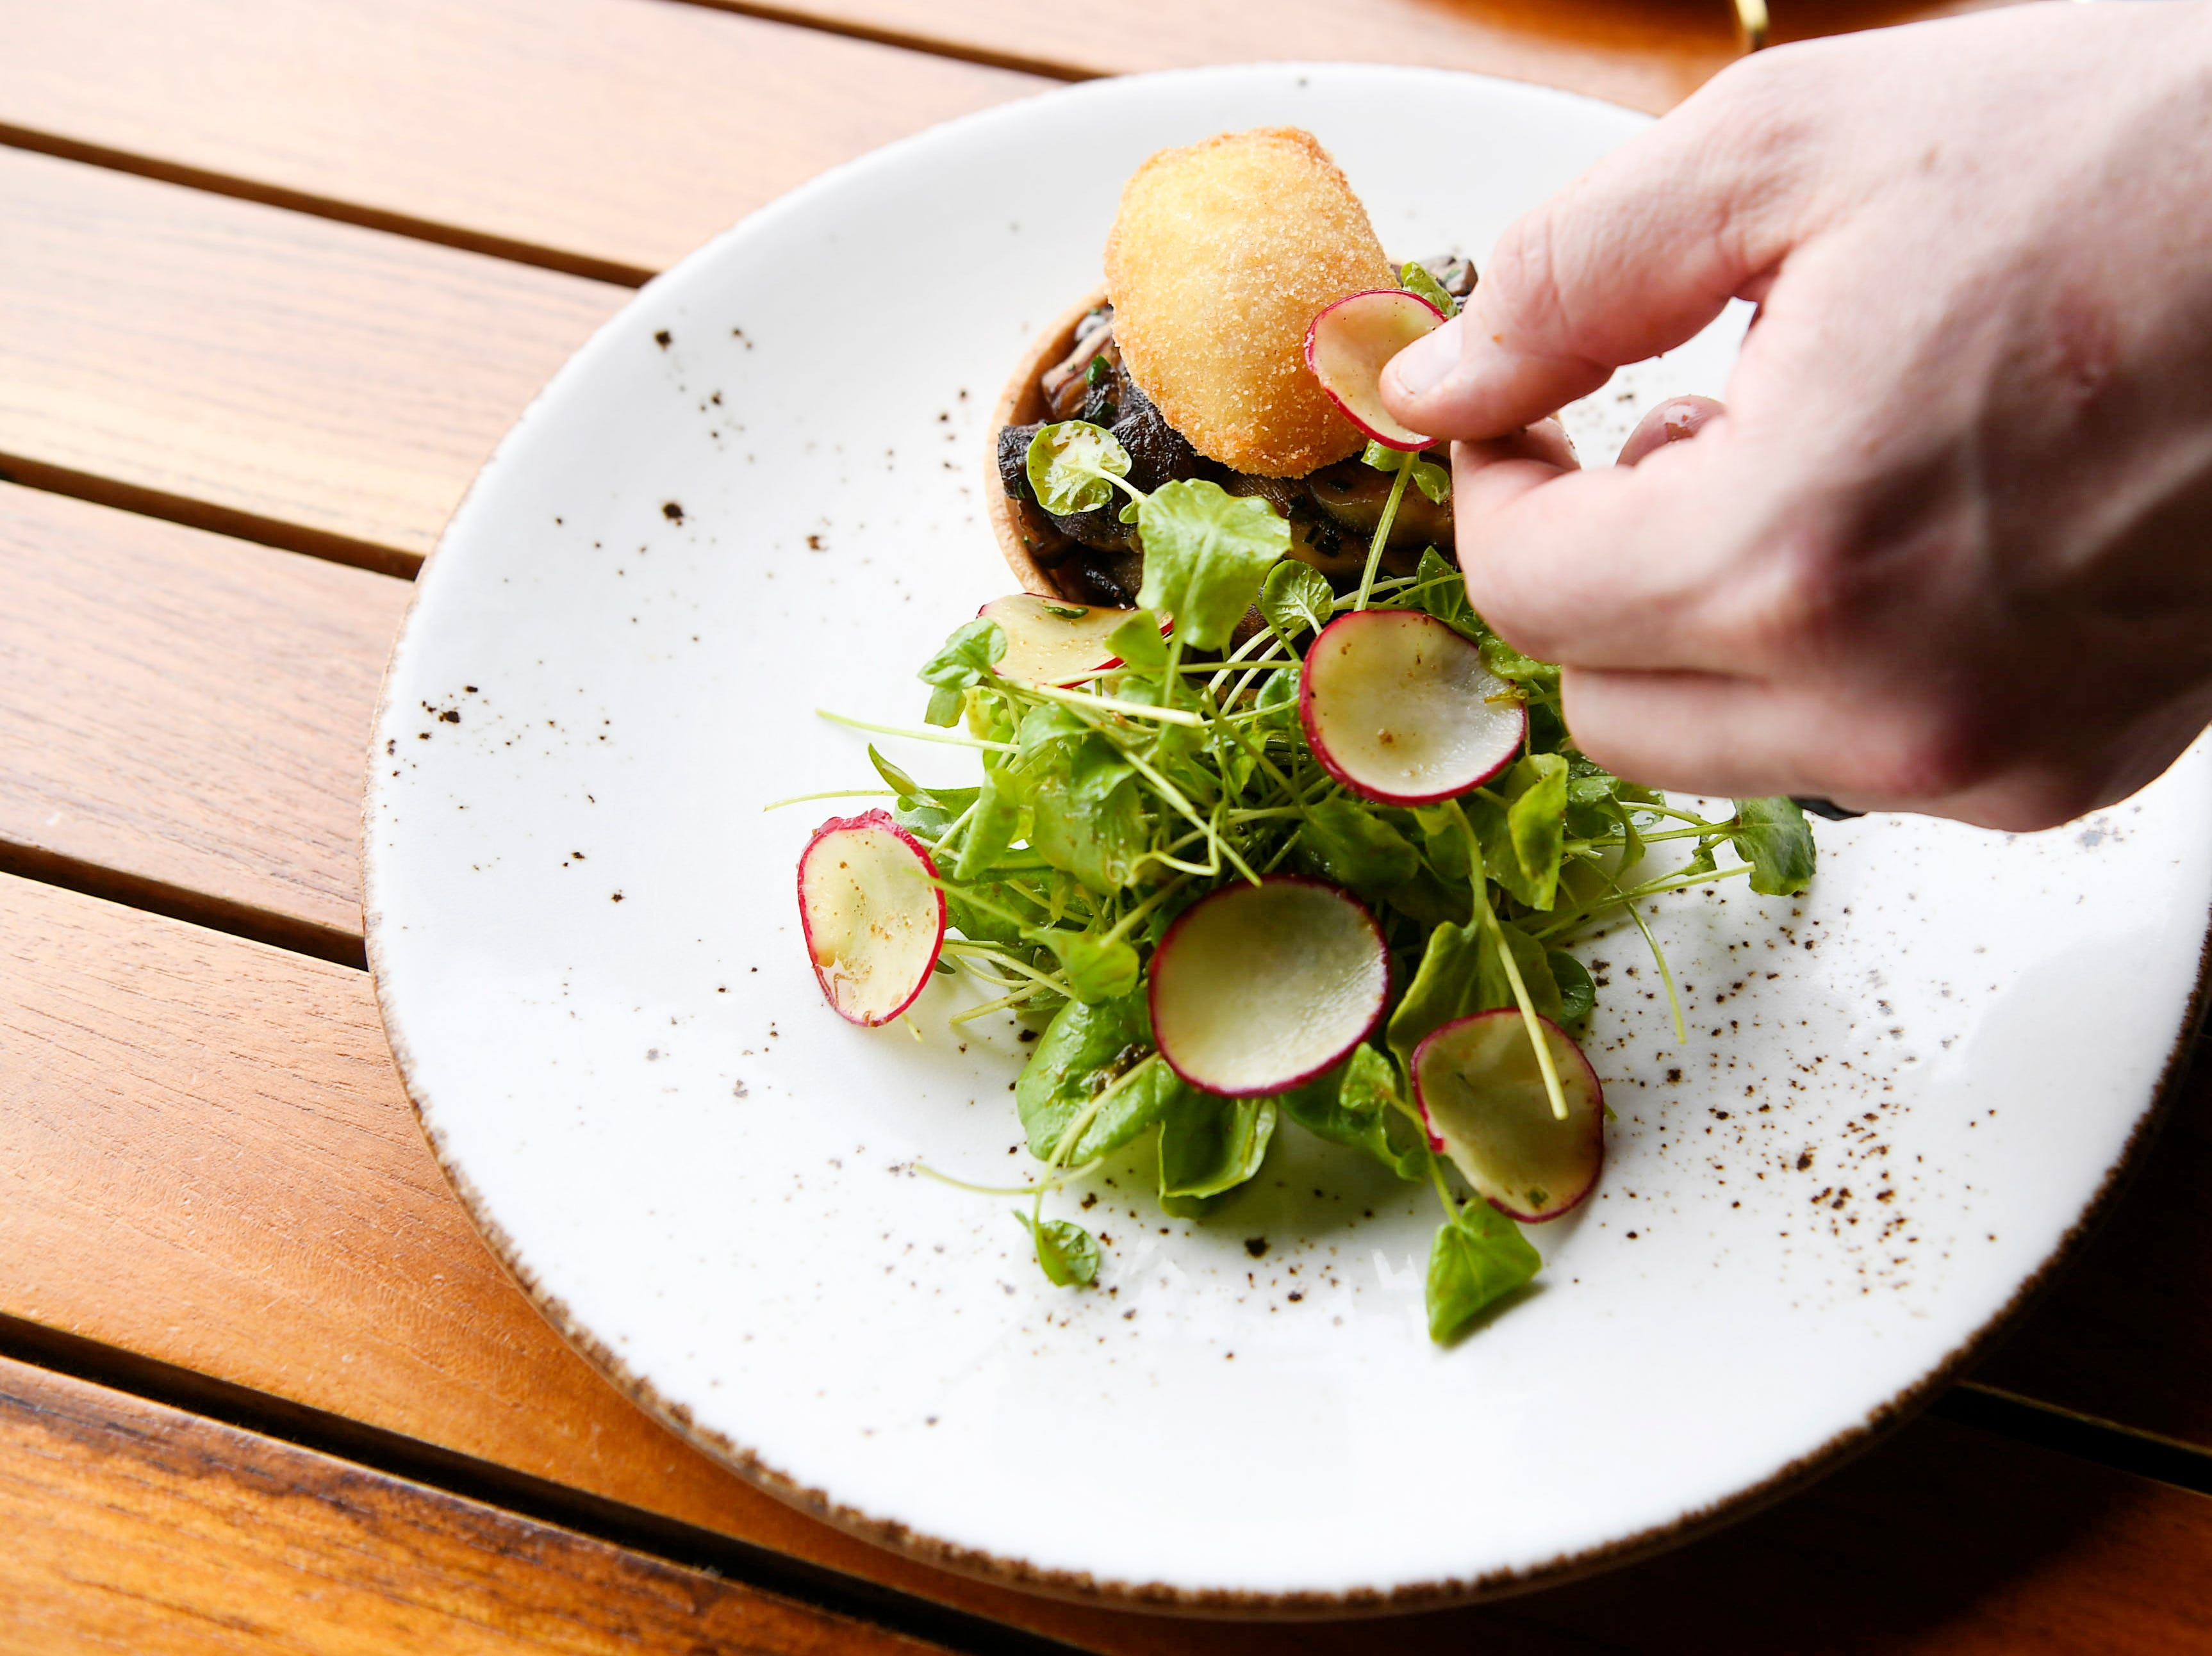 Edison Craft Ales and Kitchen executive chef Richard Gras adds finishing touches to a wild mushroom tart at the Grove Park Inn April 4, 2019.